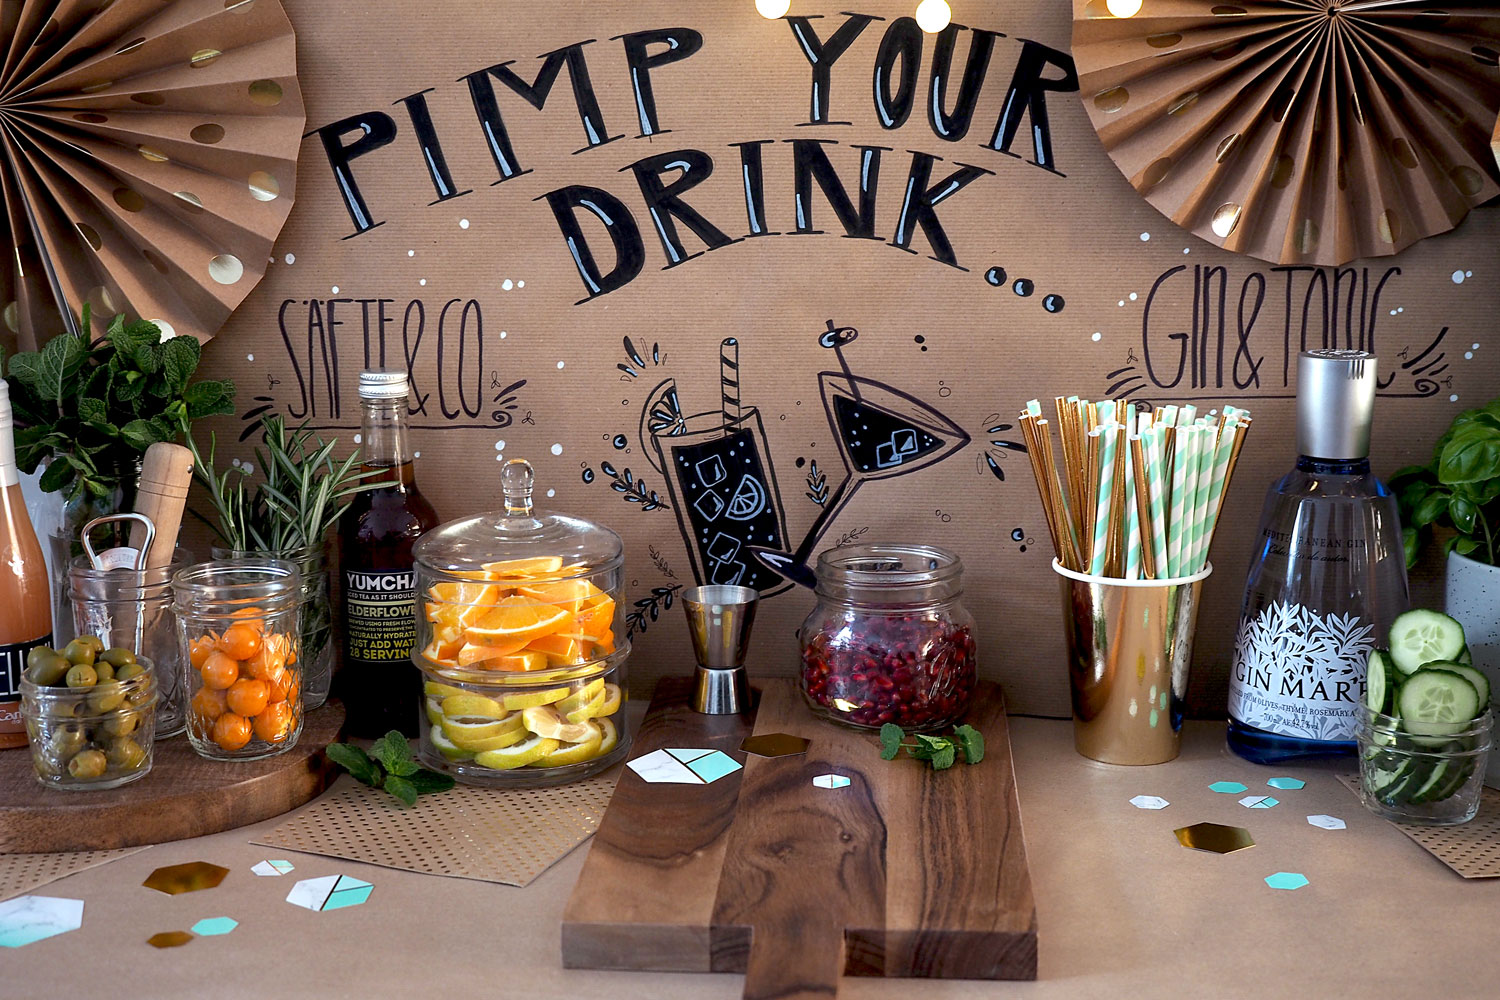 Pimp your Drink! Eine Gin & Tonic Bar für eure Silvester-Party 2017